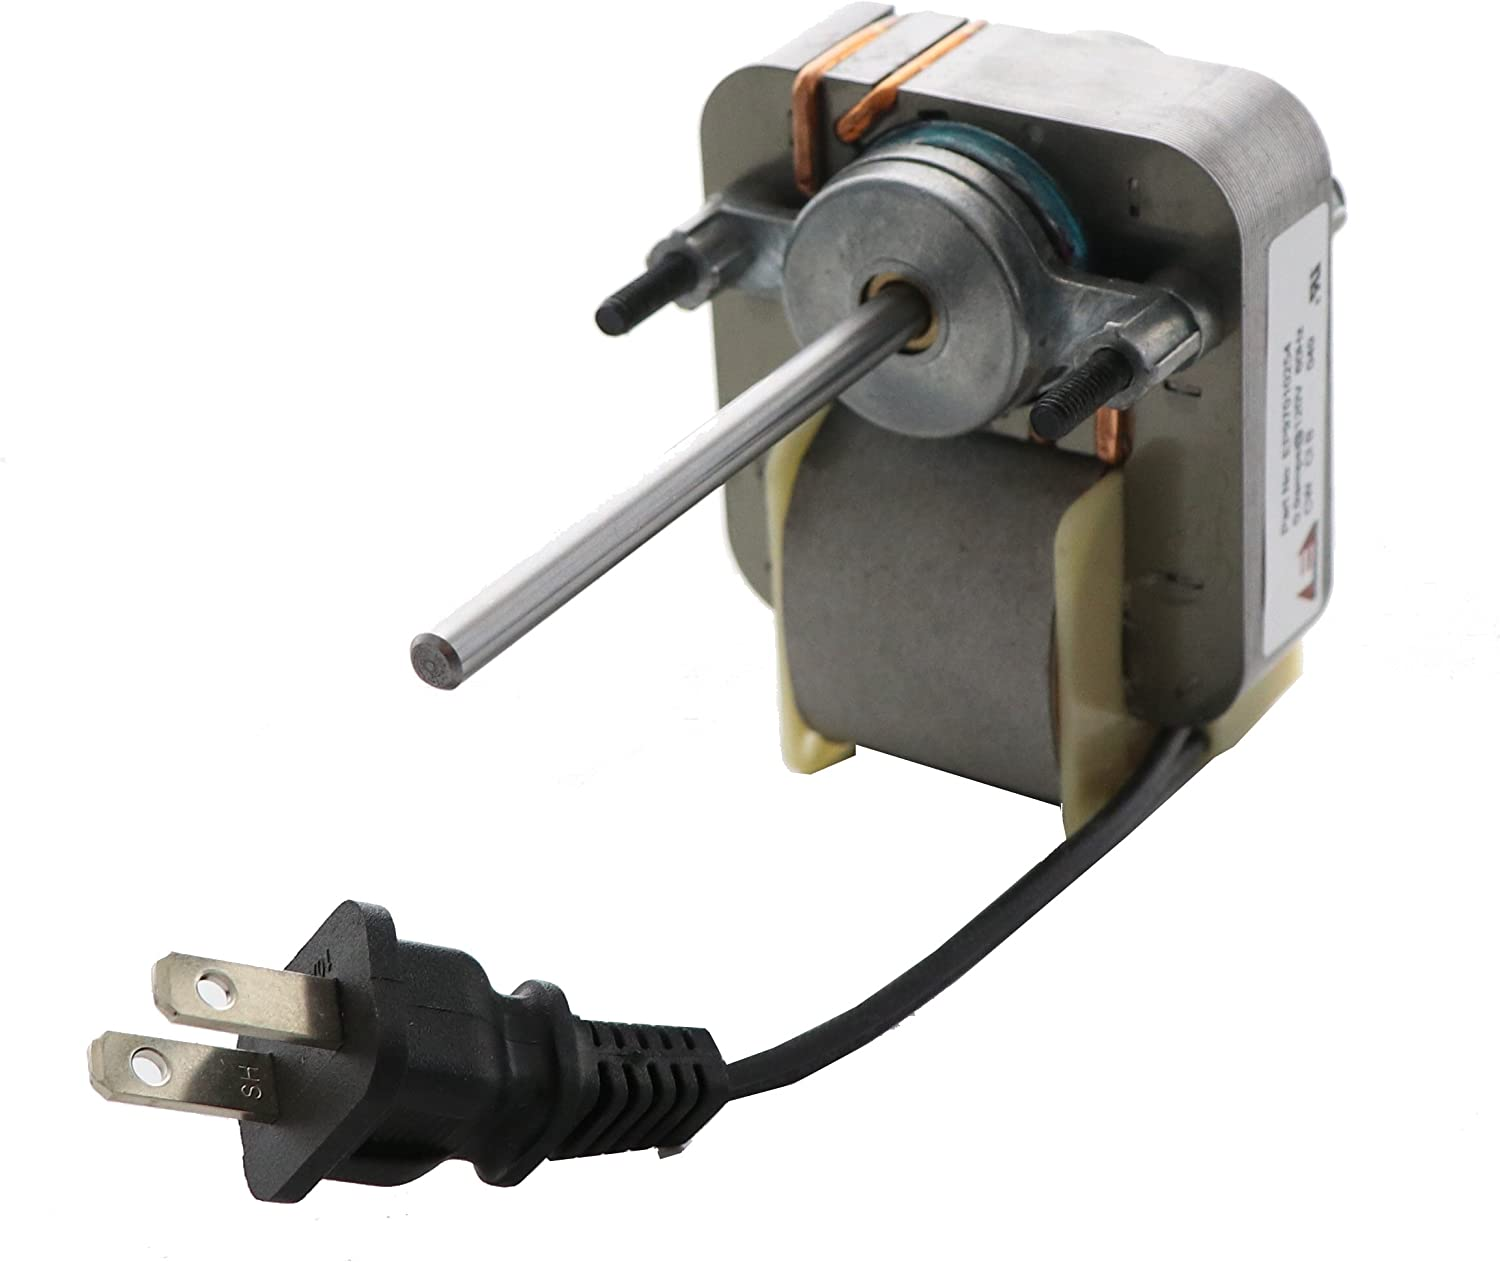 Endurance Pro 97010254/162-G Heater Vent Fan Motor Replacement for Broan,  0.9 amps, 3200 RPM, 120 volts - - Amazon.comAmazon.com